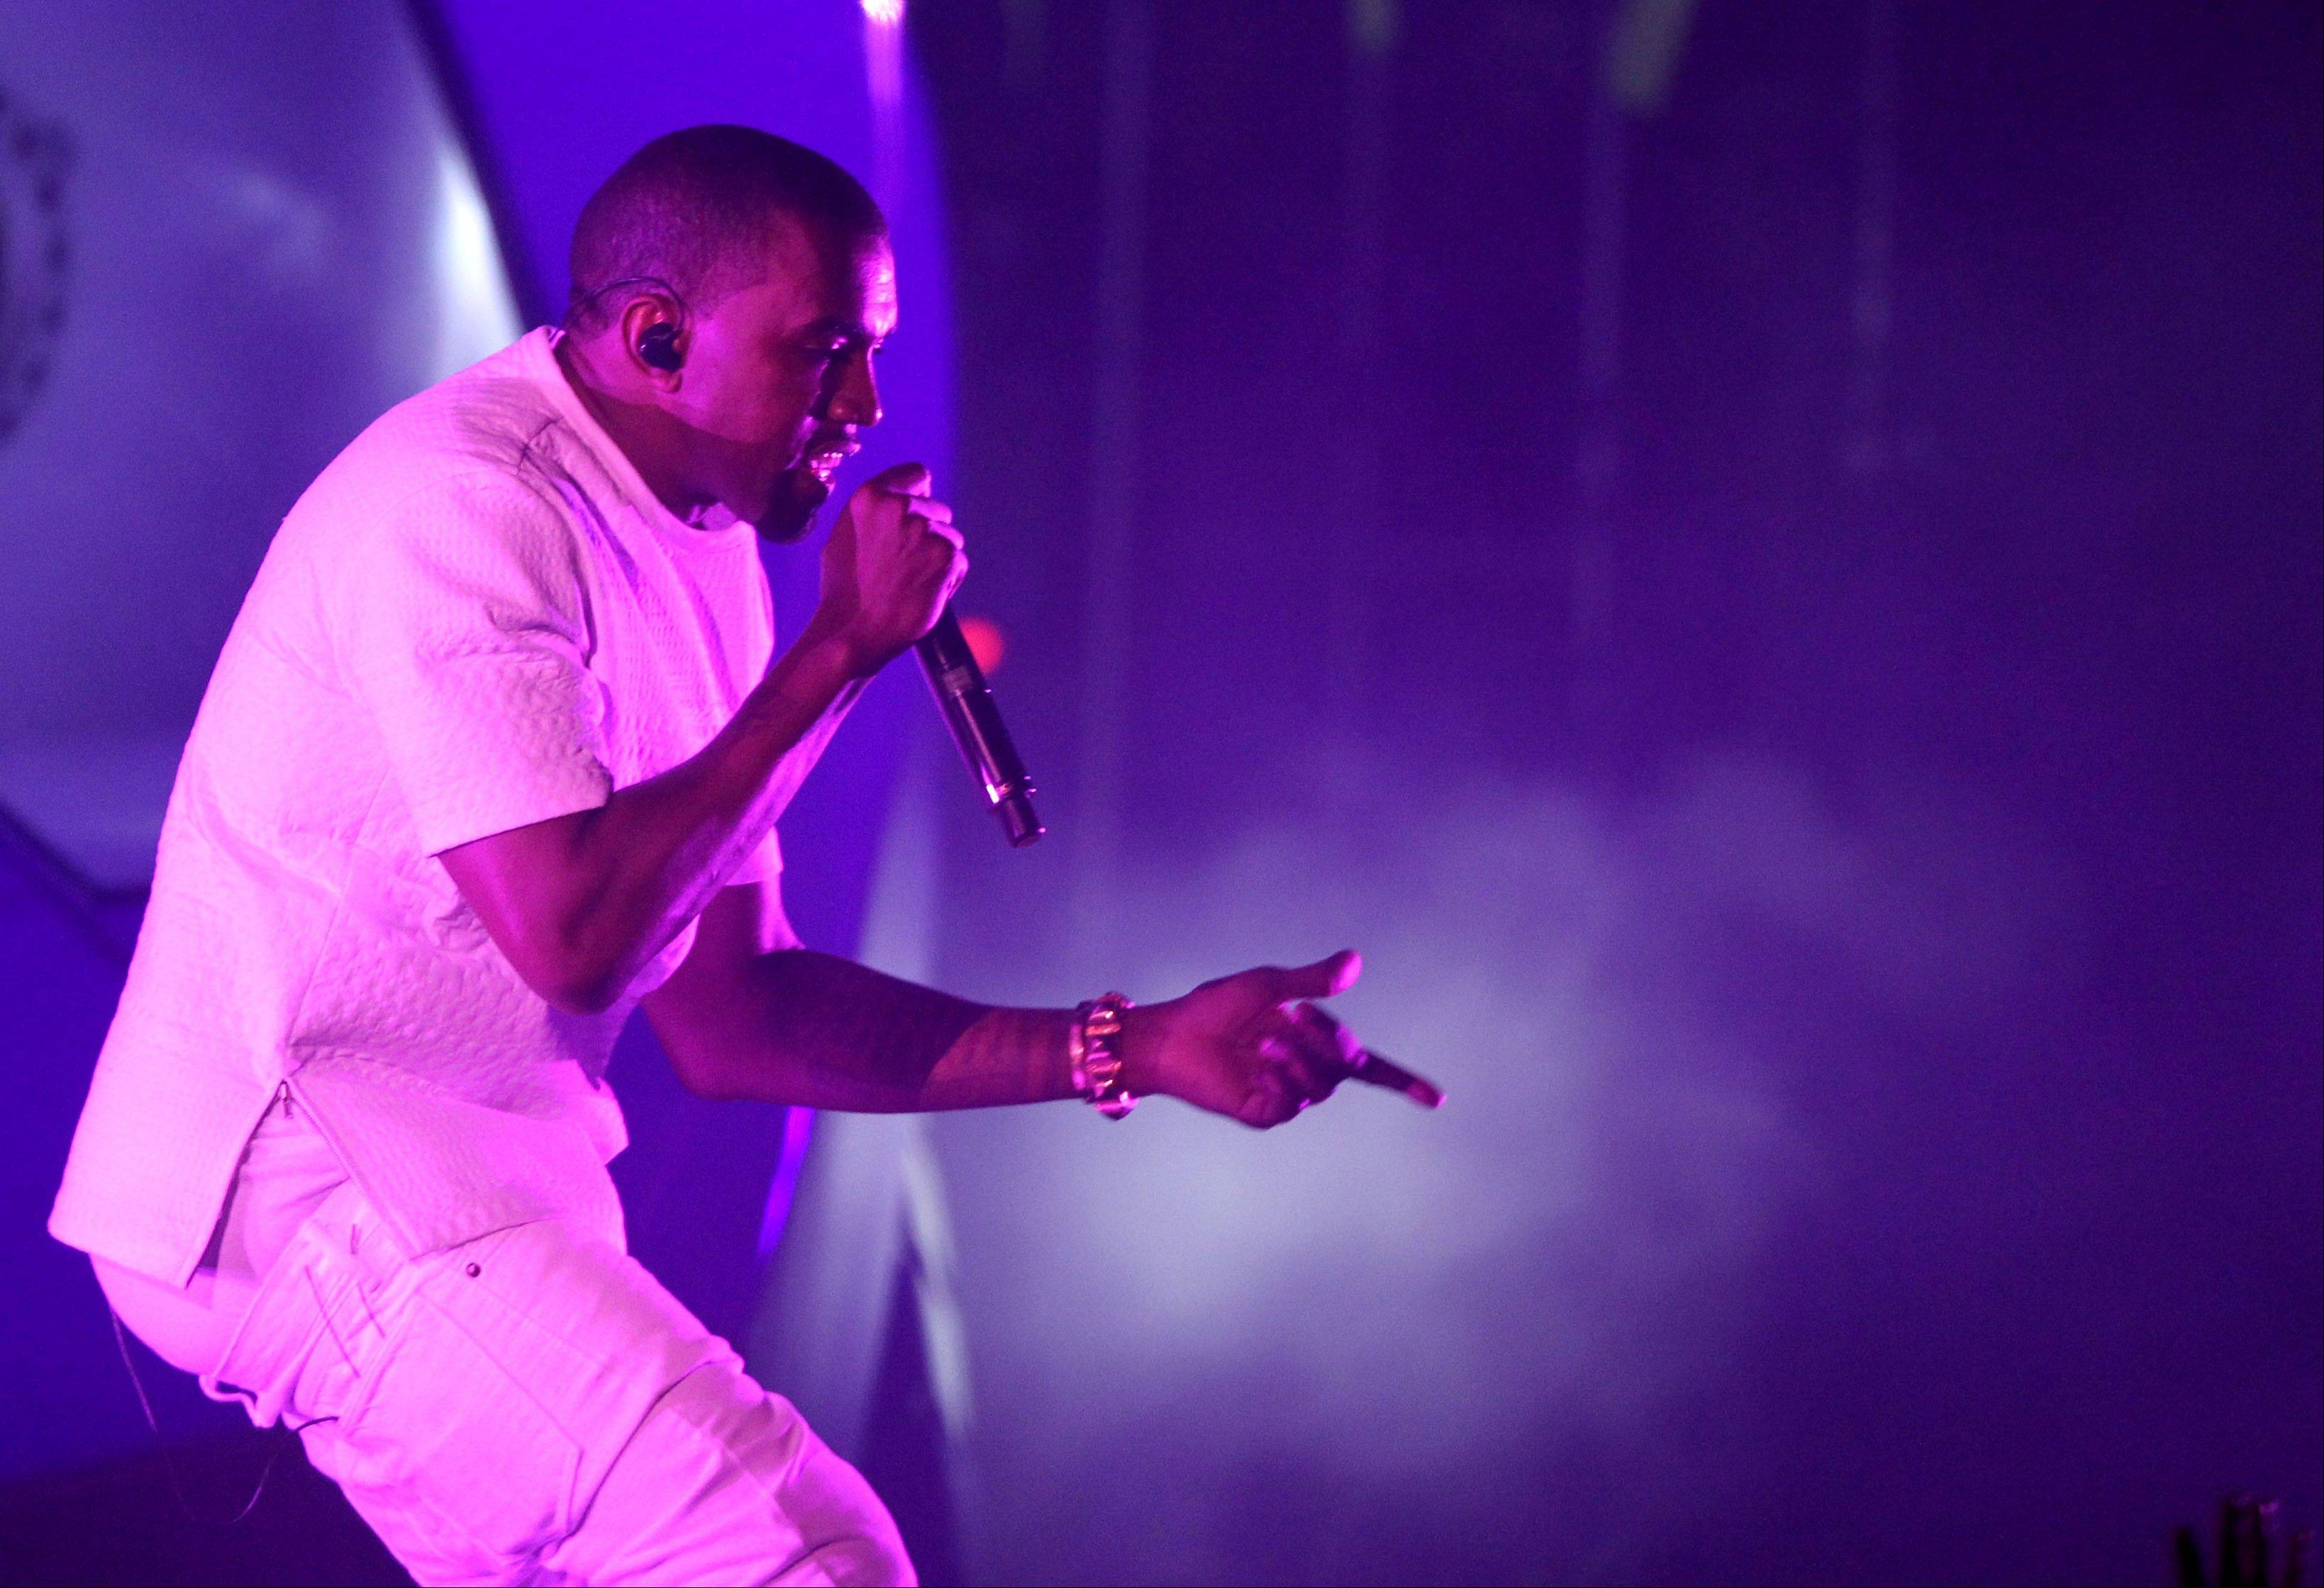 Kanye West performs at the BET Awards in Los Angeles. West�s new album �Yeezus� is an artsy, dark adventure that isn�t easy to digest. The 10 tracks are made up of moody, electronic and erratic beats, and lyrics about race and religion.